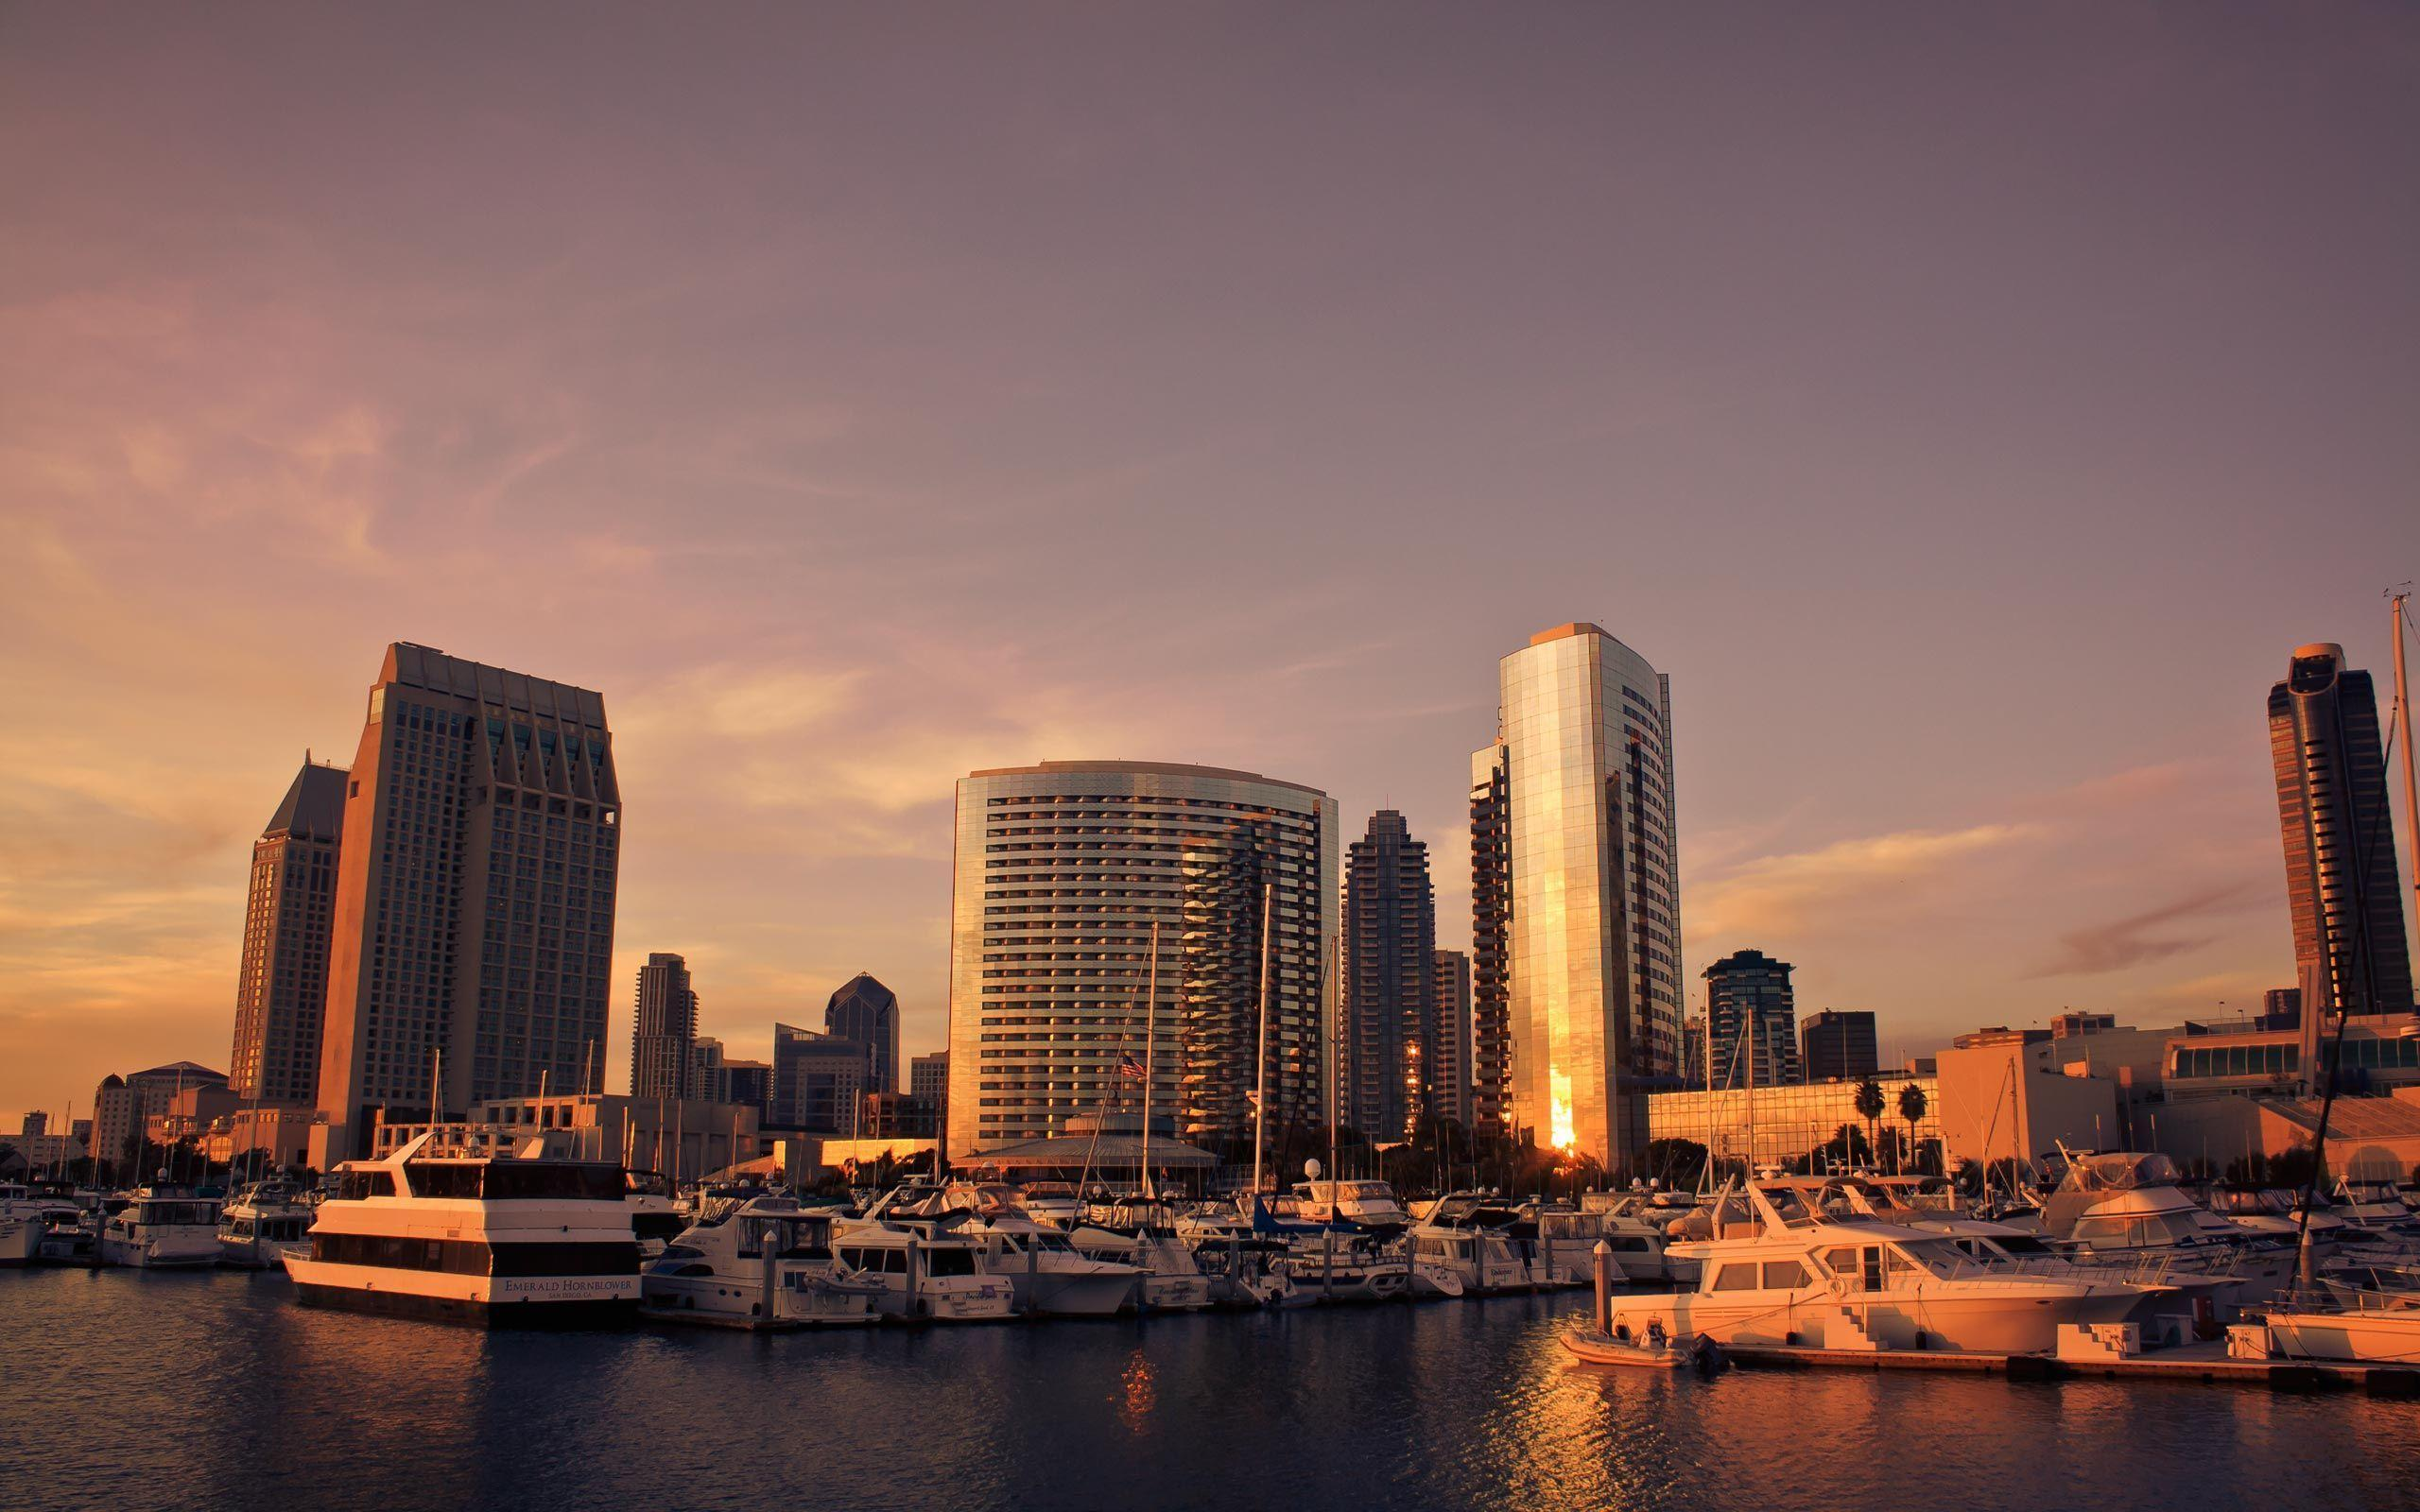 Free Wallpapers - San Diego Sunset wallpaper